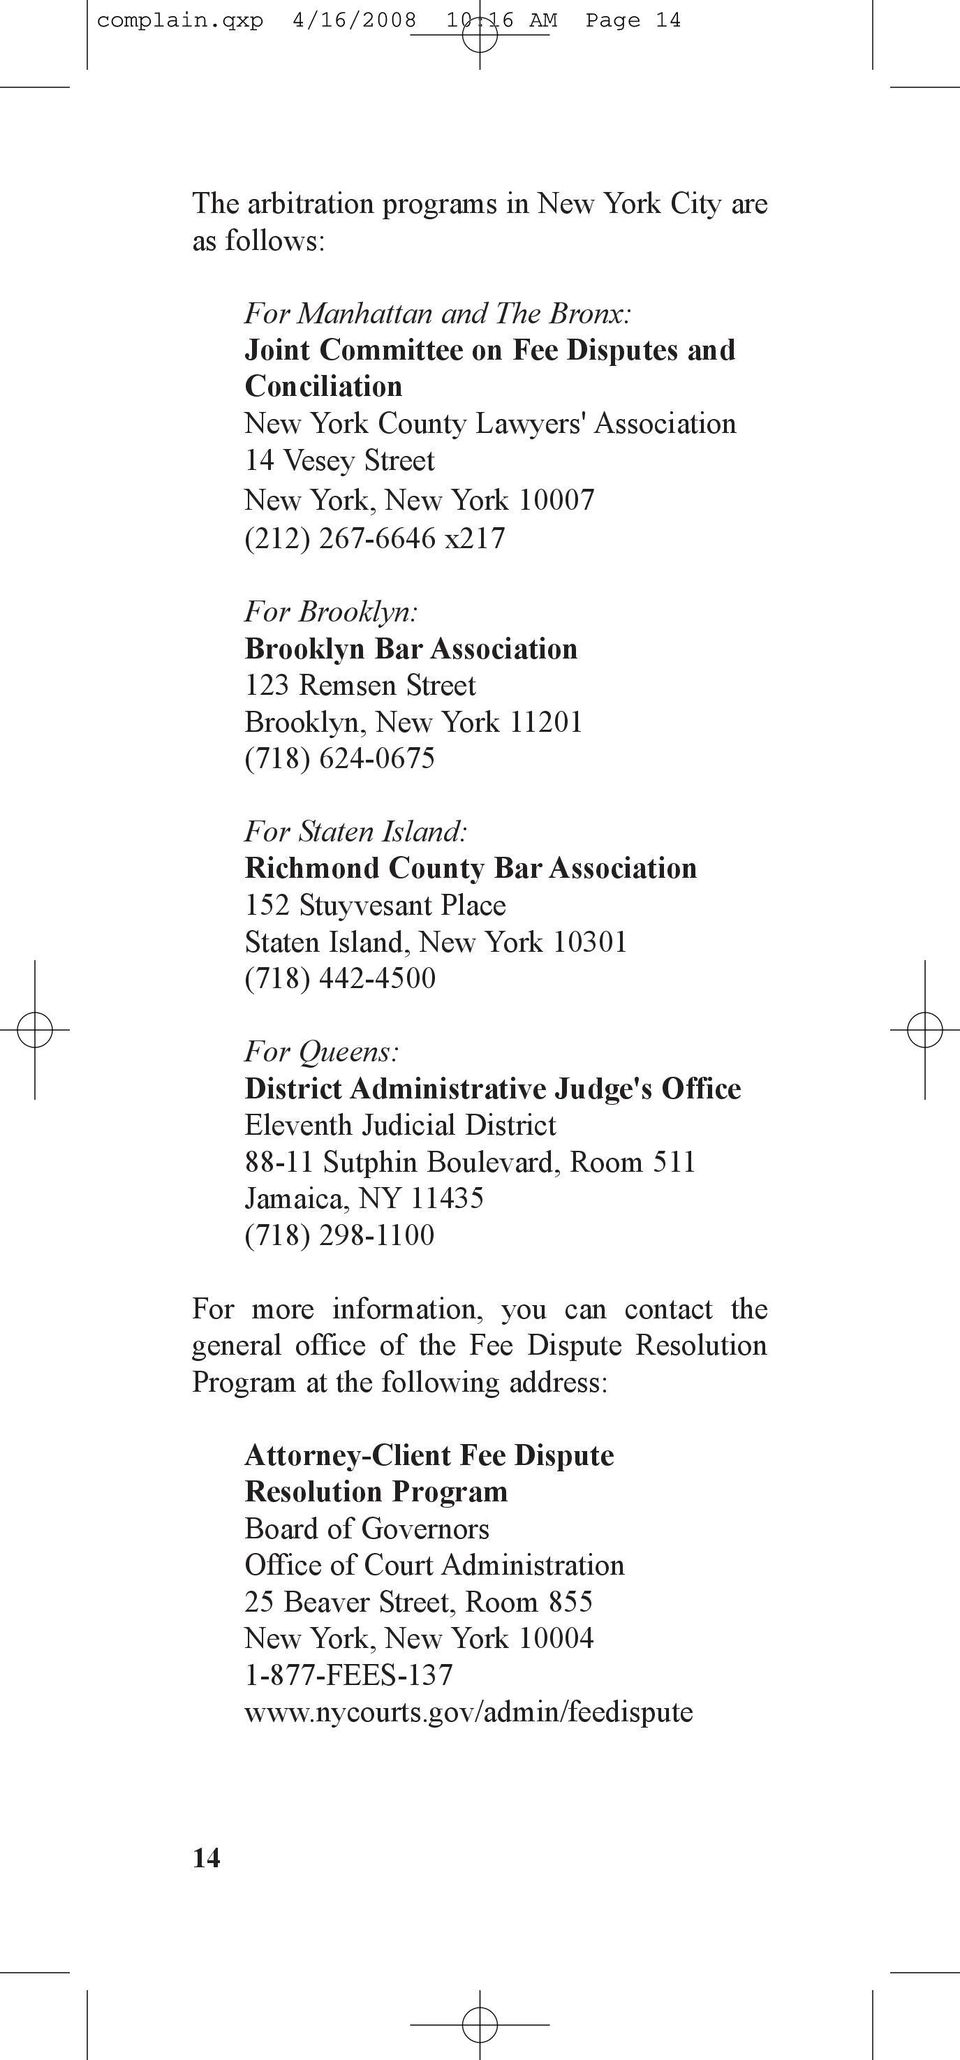 Association 14 Vesey Street New York, New York 10007 (212) 267-6646 x217 For Brooklyn: Brooklyn Bar Association 123 Remsen Street Brooklyn, New York 11201 (718) 624-0675 For Staten Island: Richmond